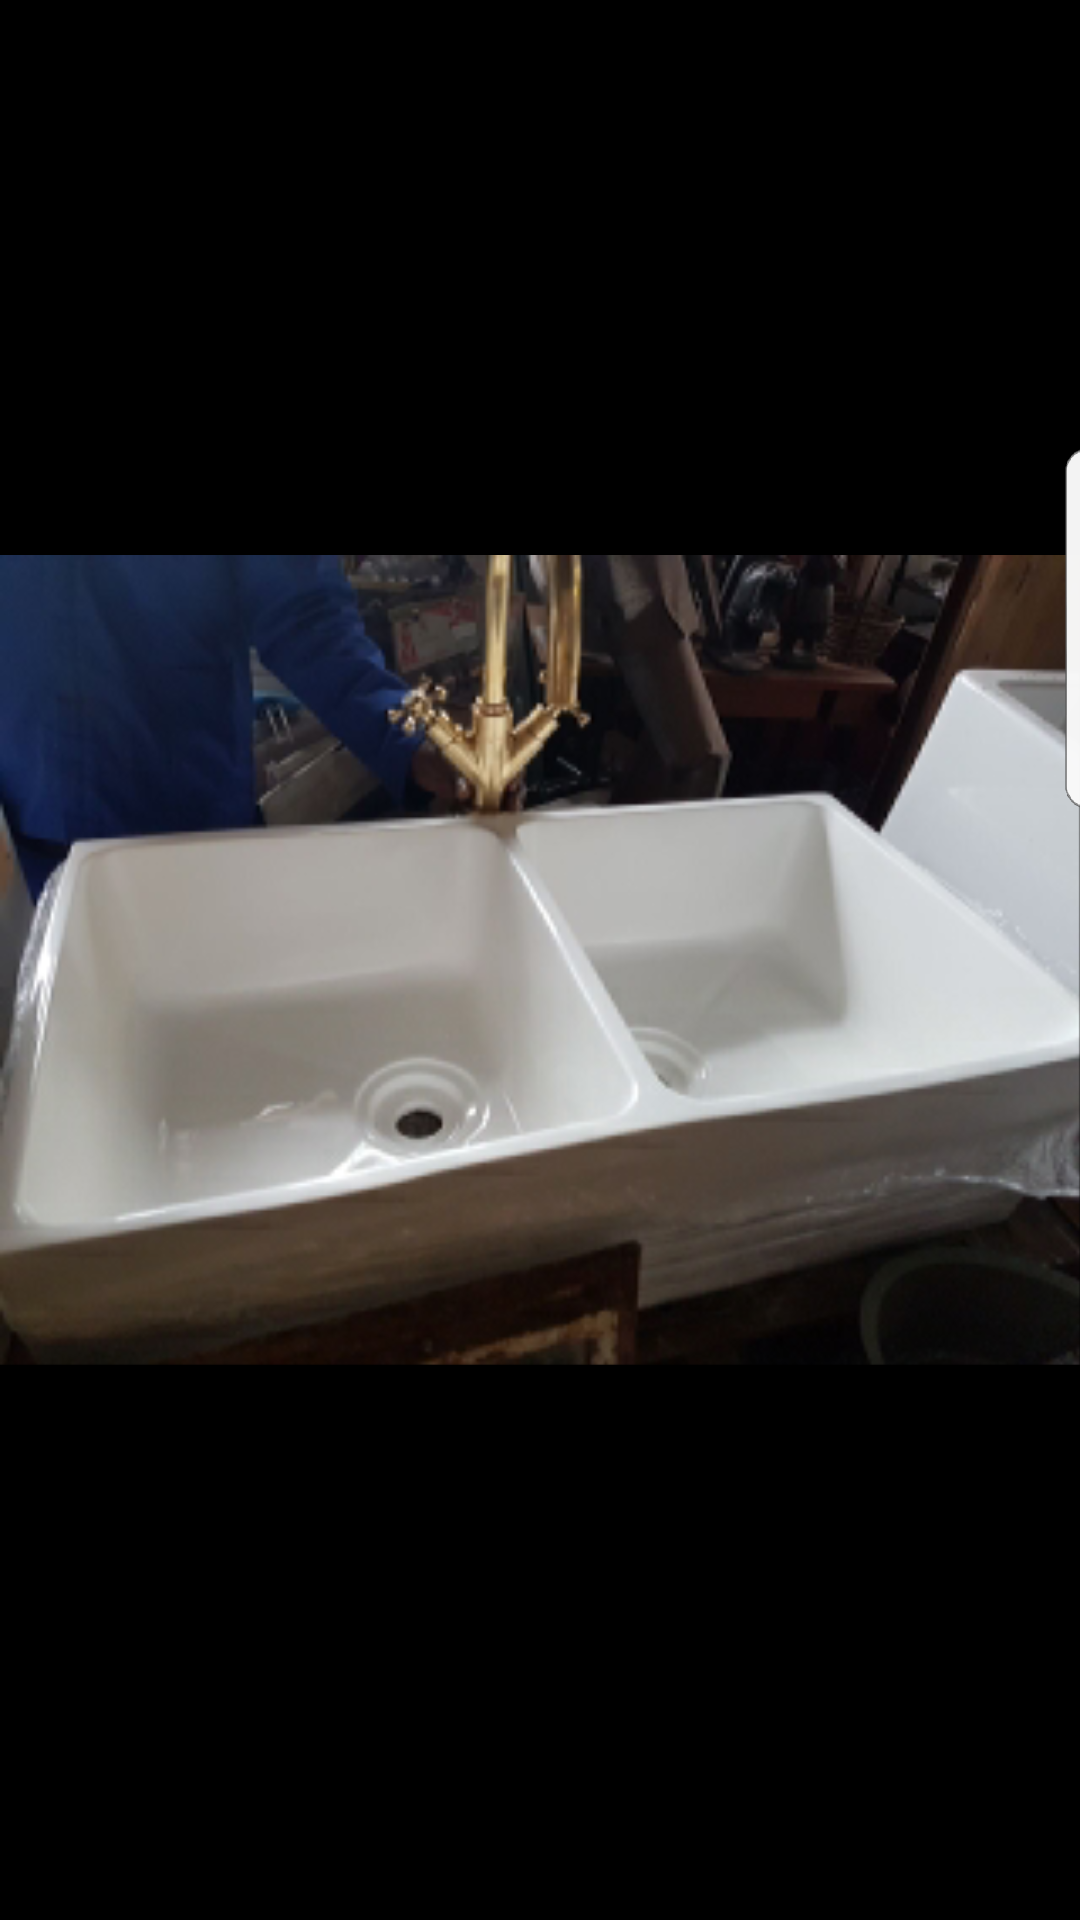 Double butler sinks